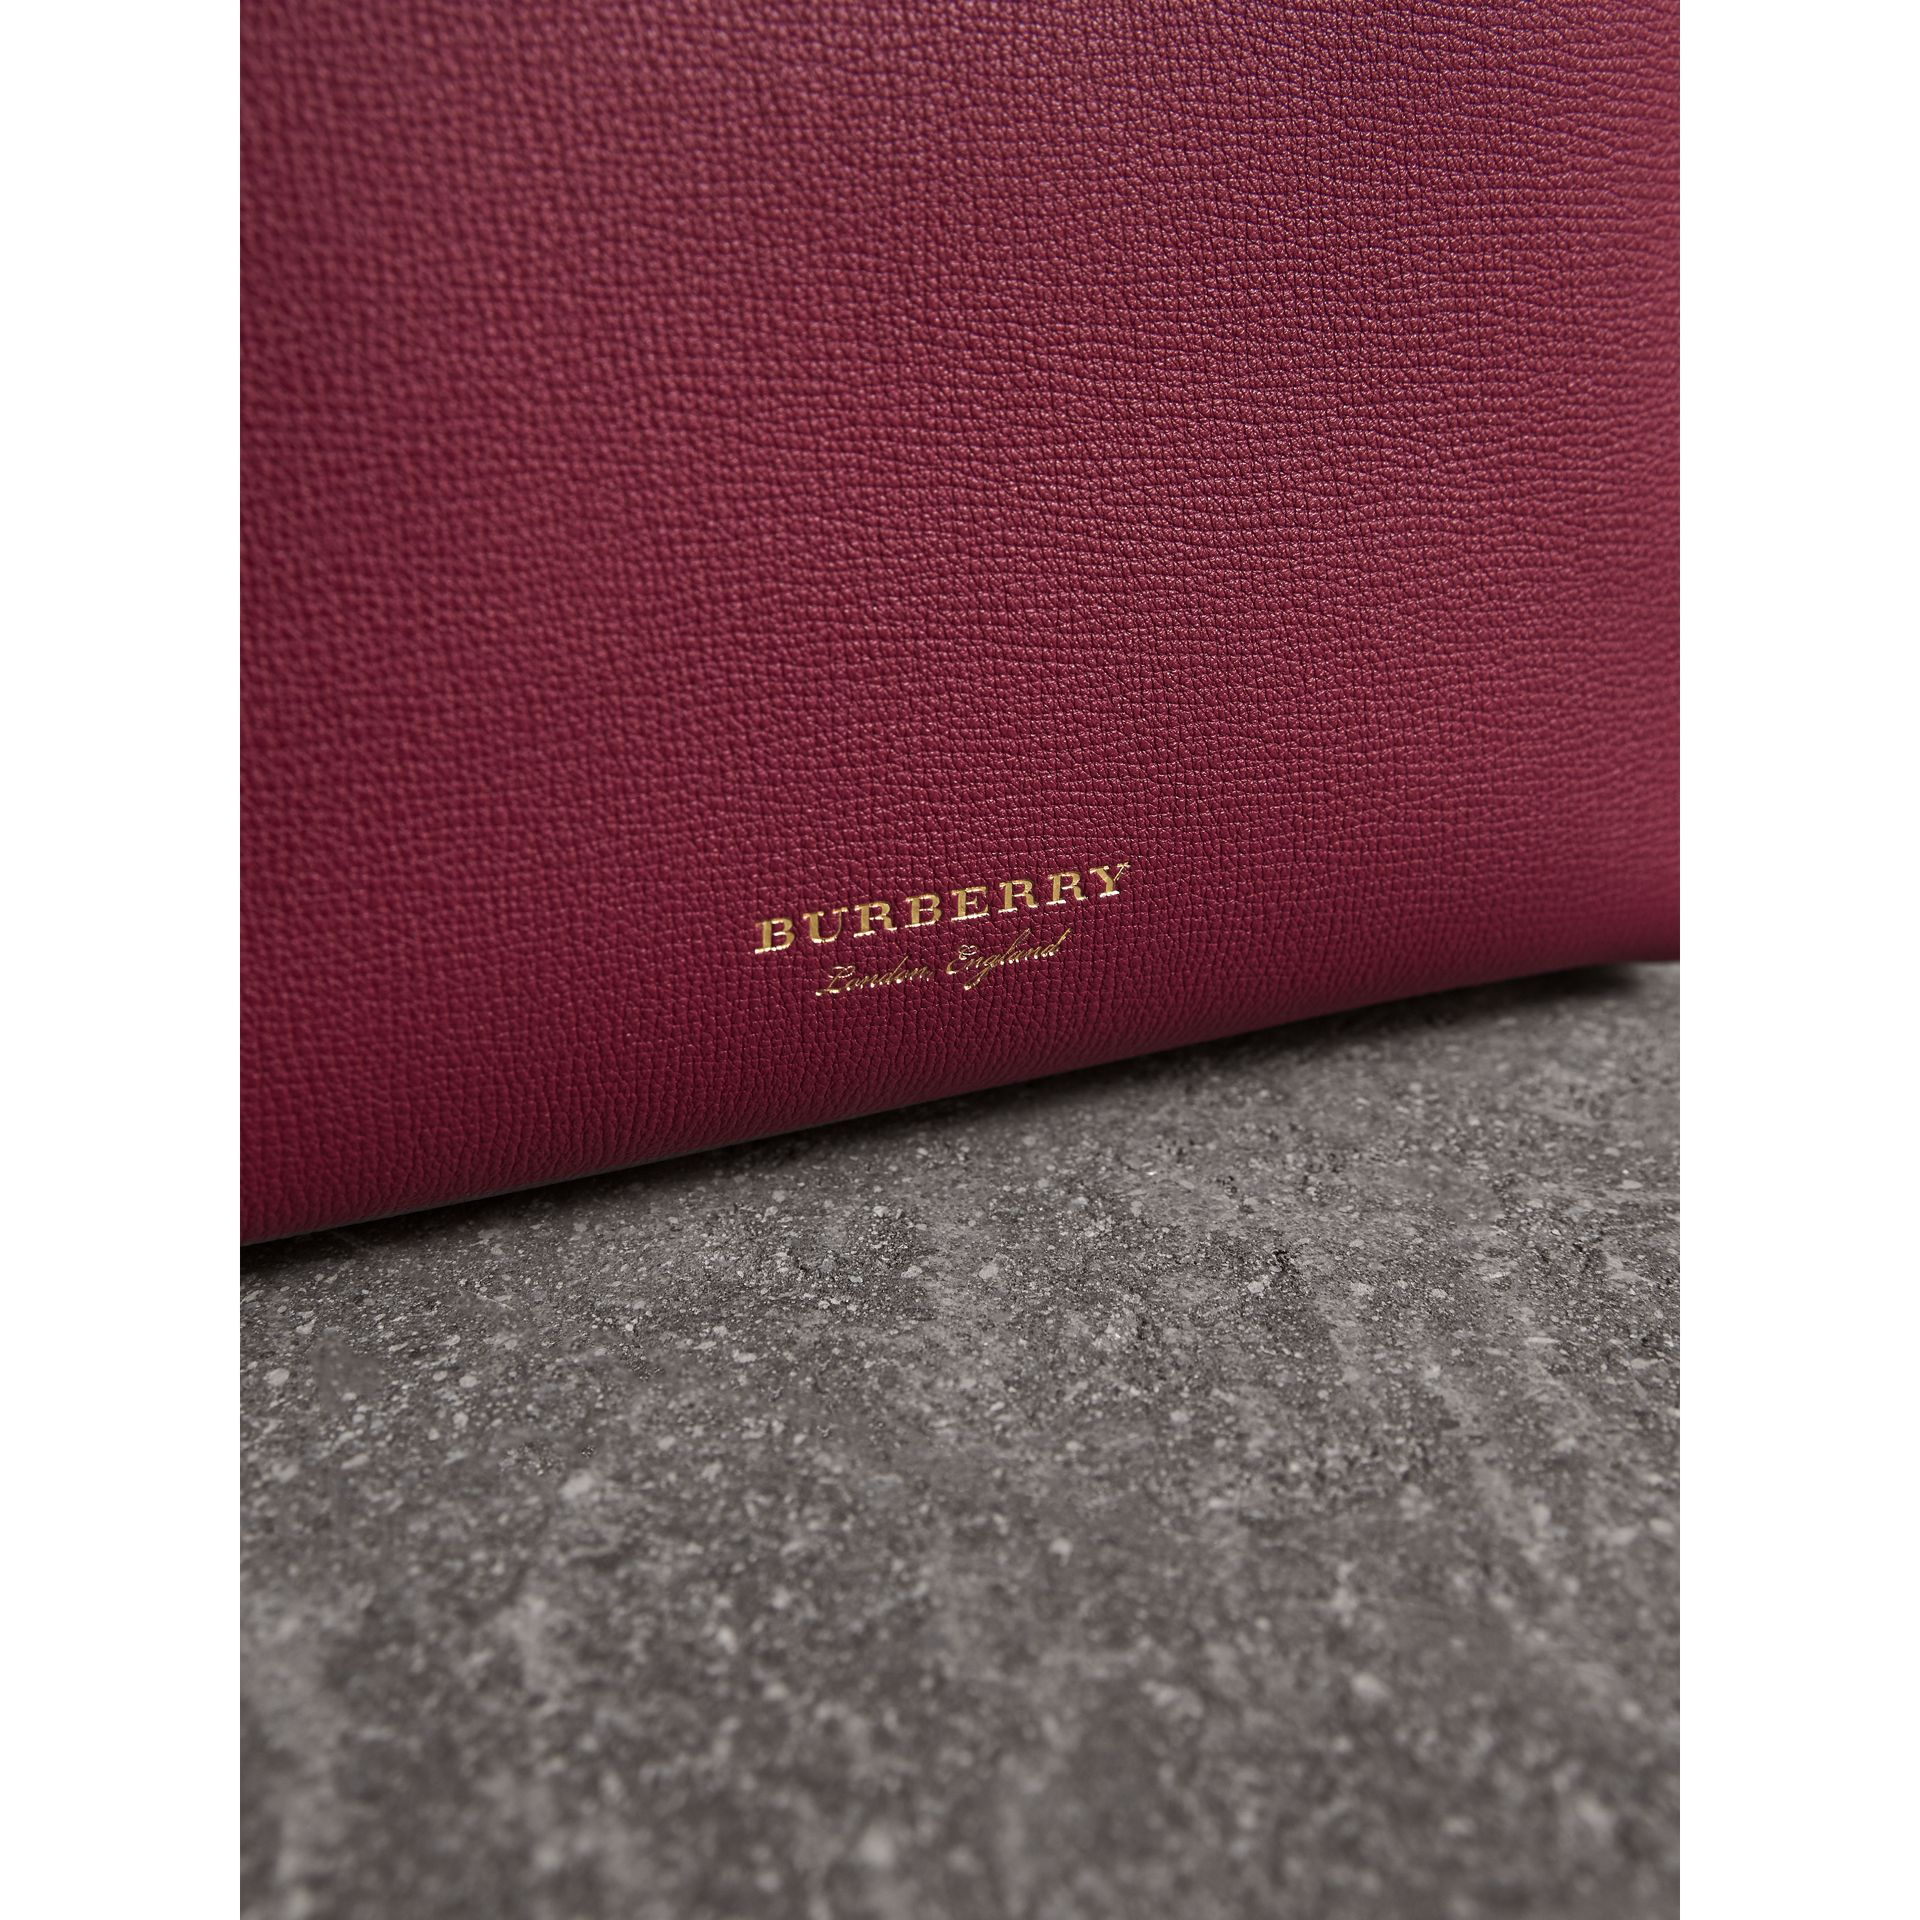 The Small Banner in Two-tone Leather in Berry Pink - Women | Burberry United Kingdom - gallery image 1